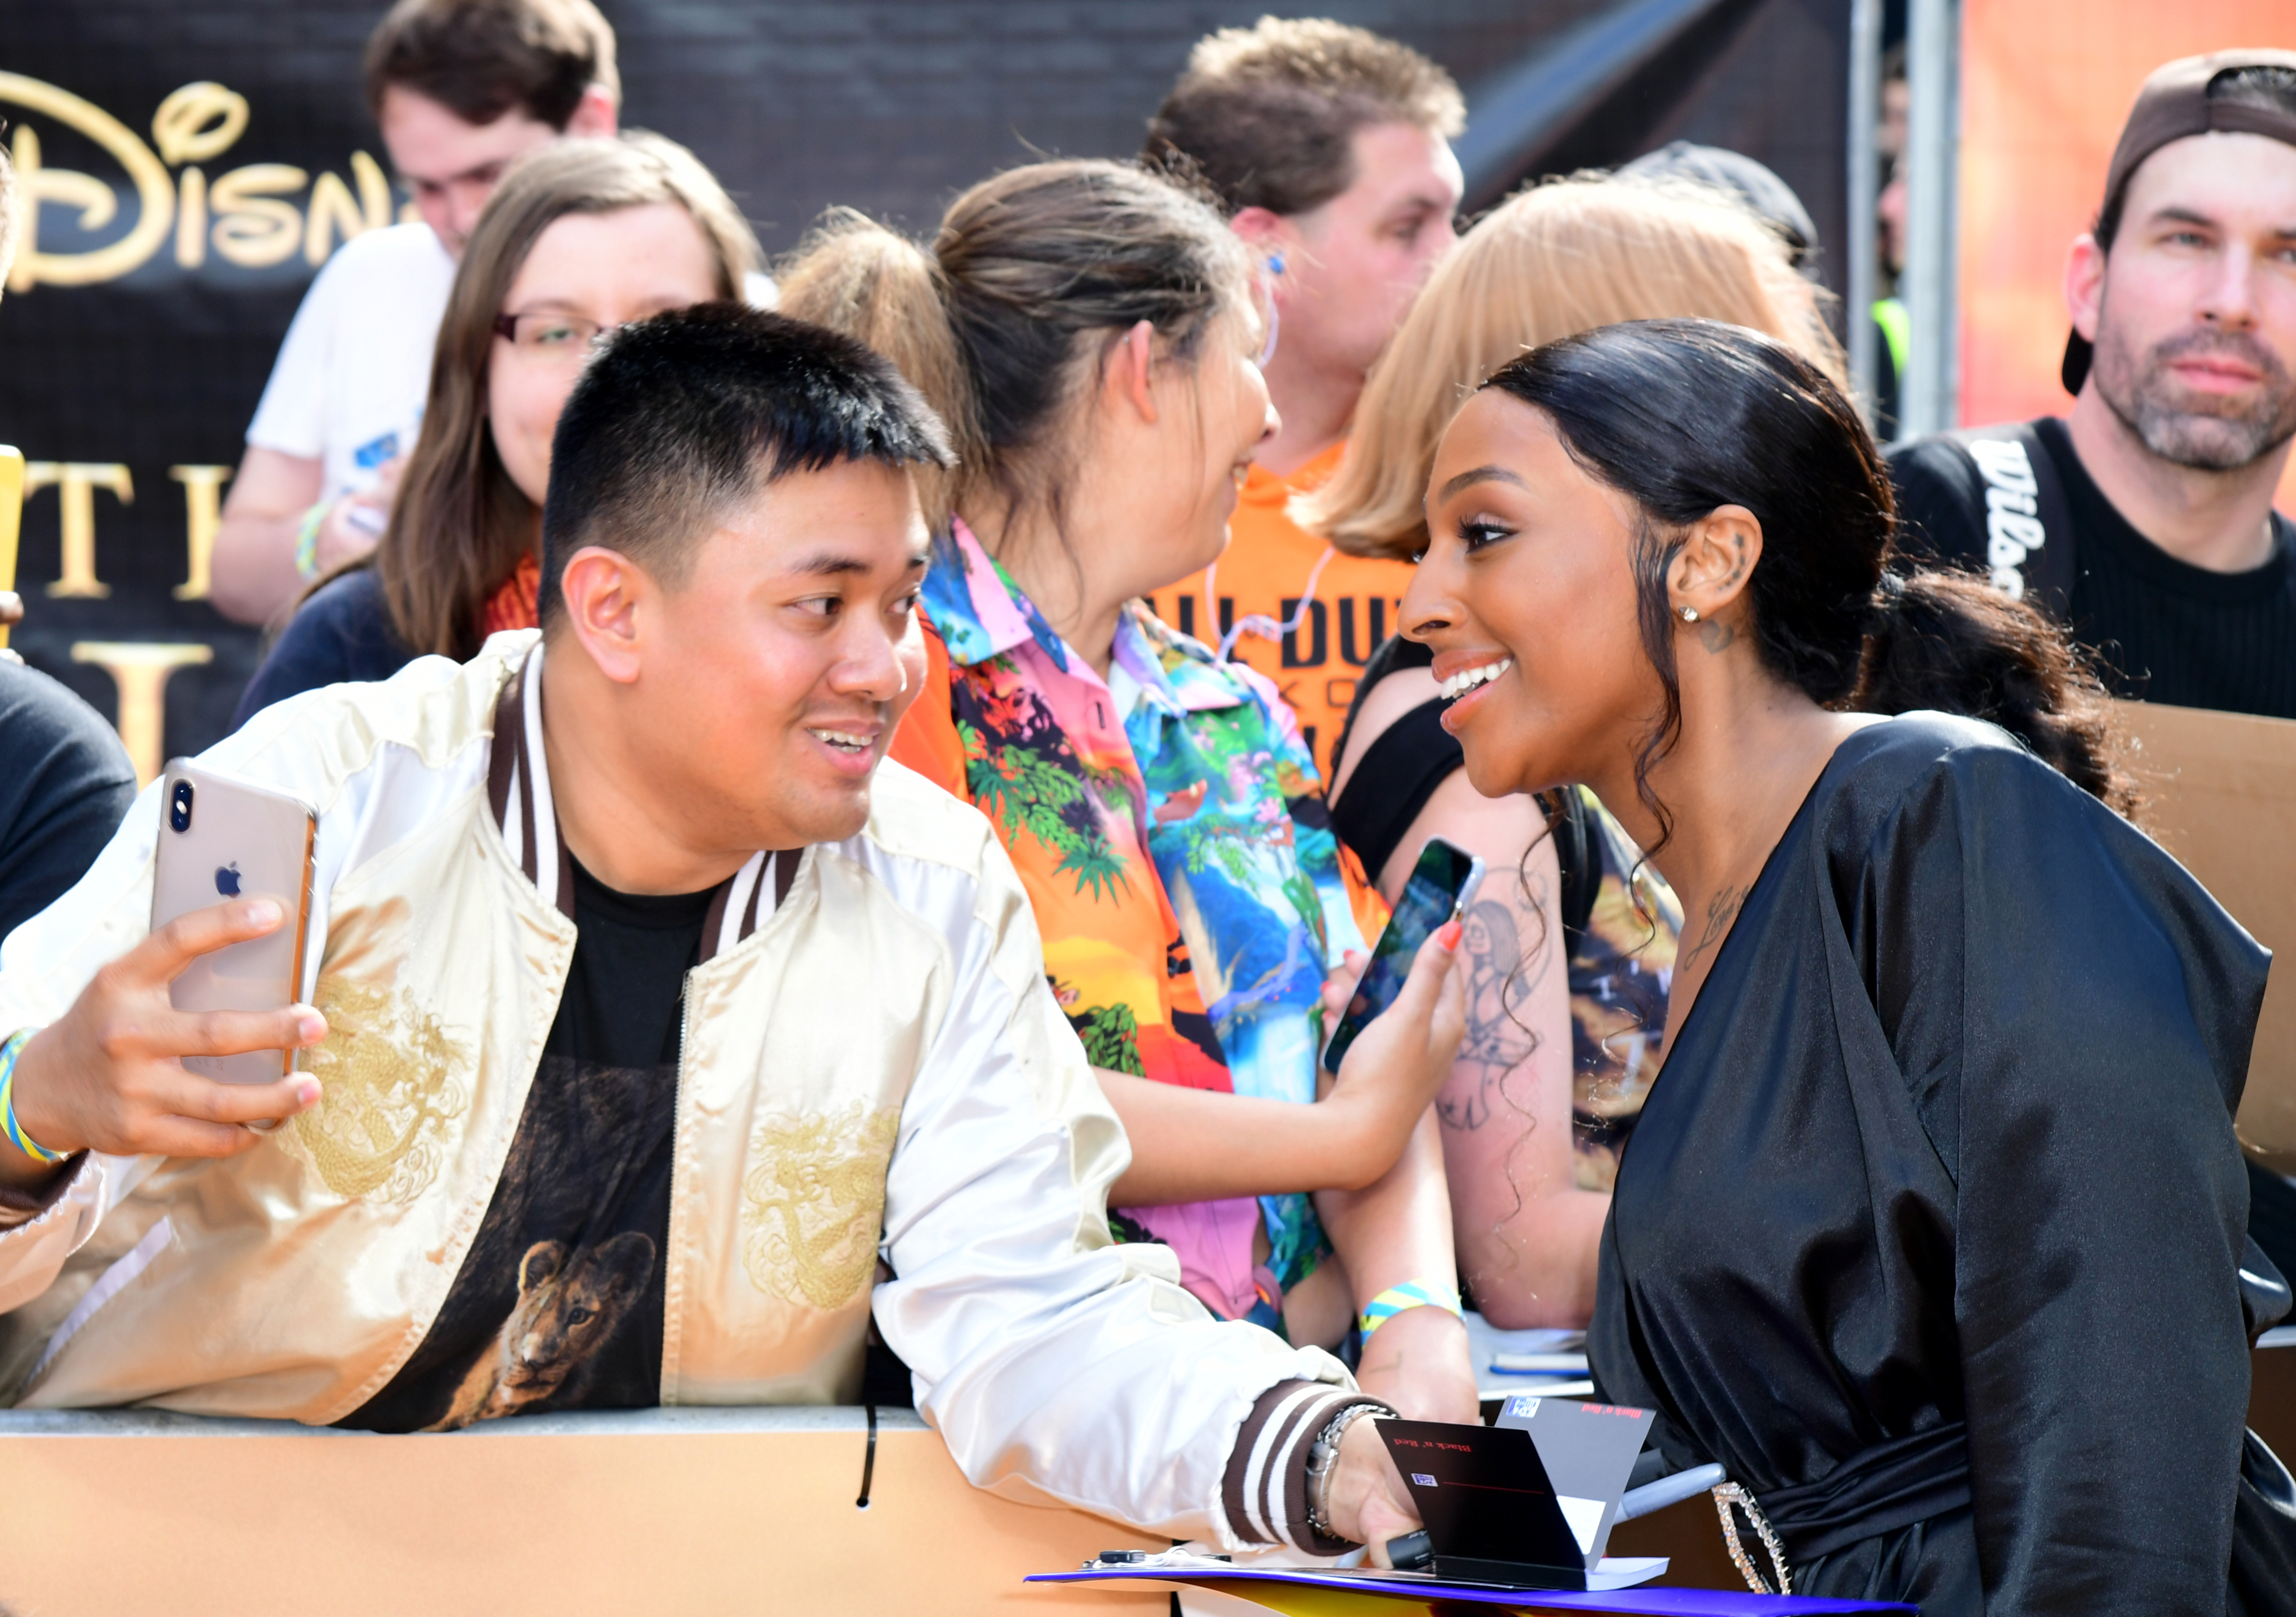 Alexandra Burke poses for a photograph with a fan during Disney's The Lion King European Premiere held in Leicester Square, London.